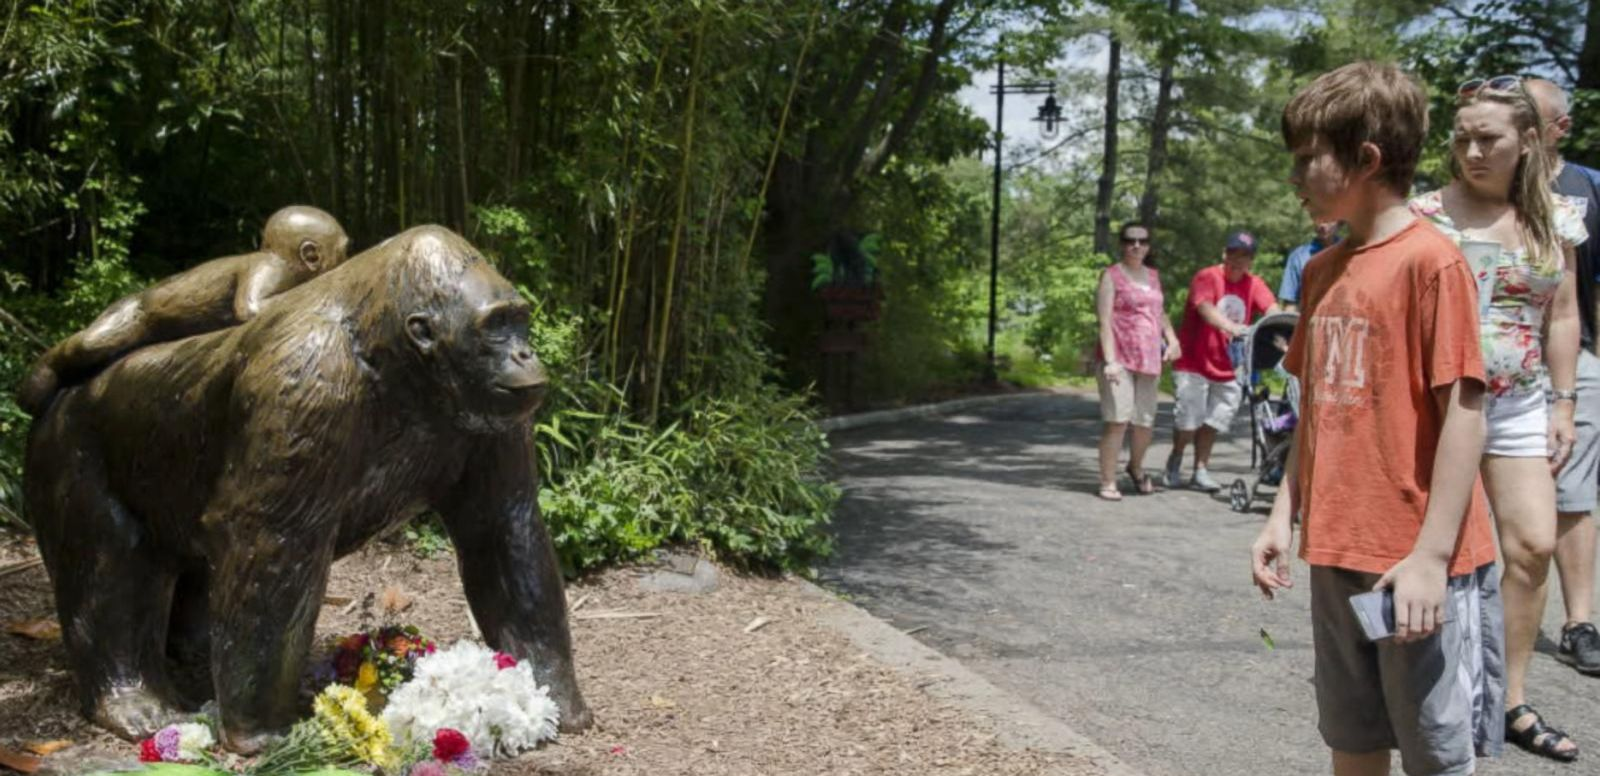 VIDEO: Outrage Erupts After a Gorilla Is Shot and Killed at the Cincinnati Zoo